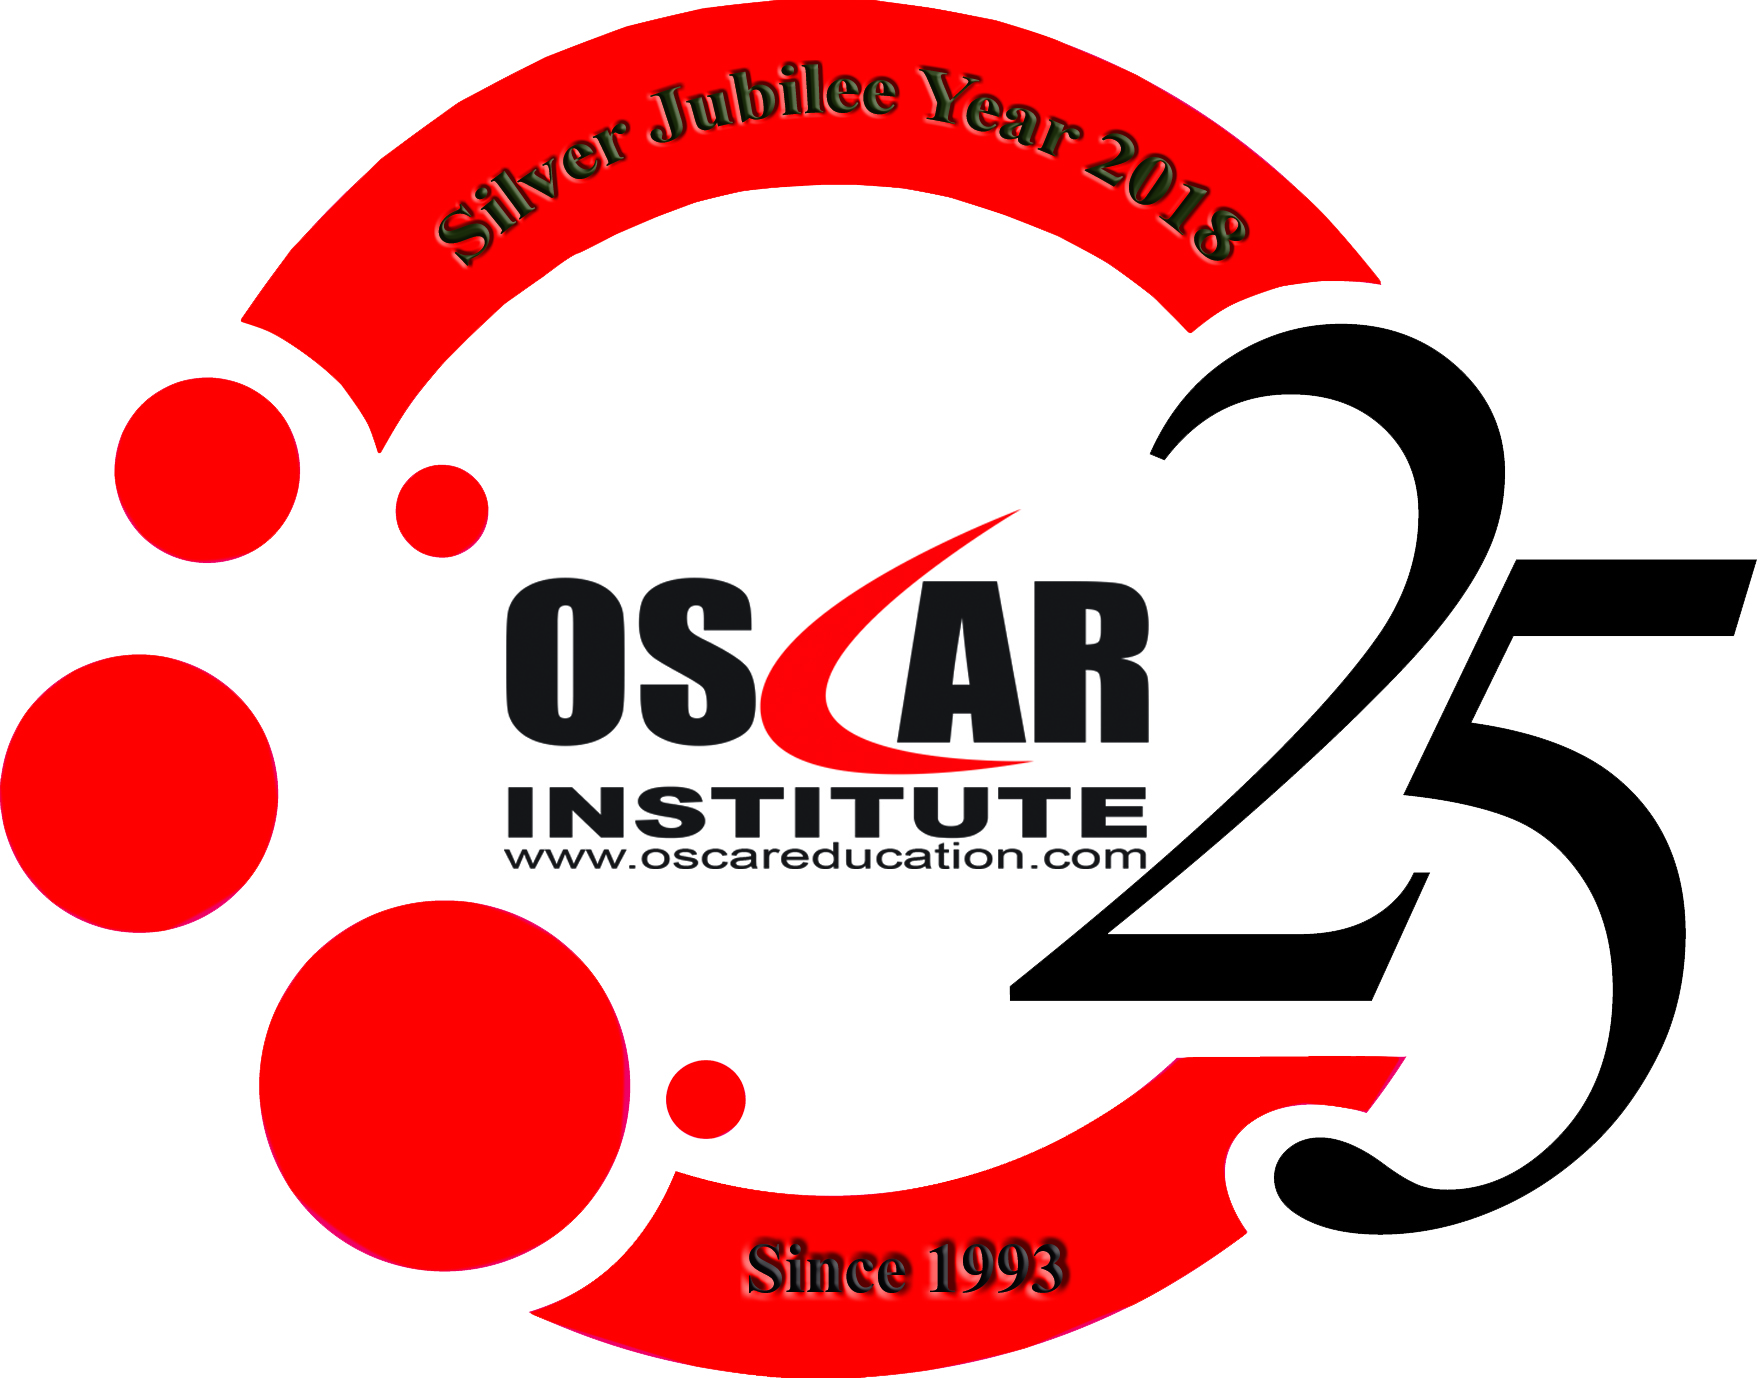 More about Oscar Education Group